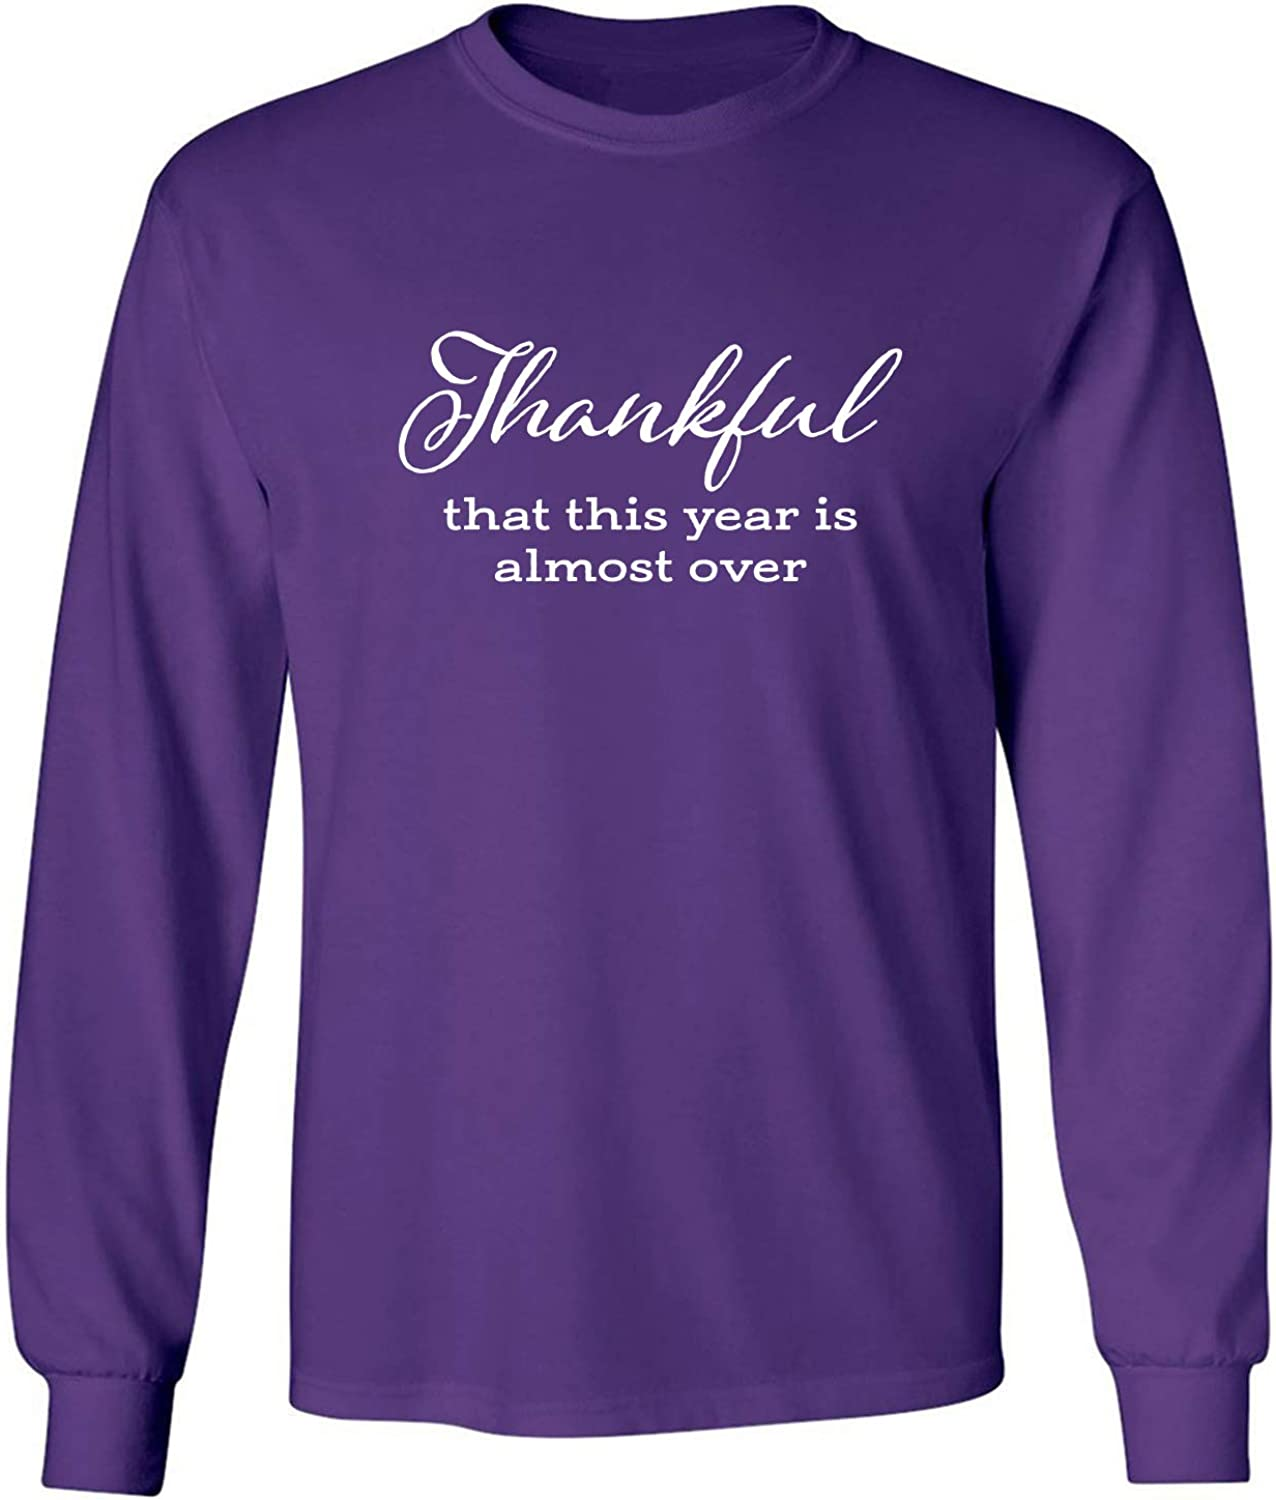 Thankful This Year is Almost Over Adult Long Sleeve T-Shirt in Purple - XXX-Large